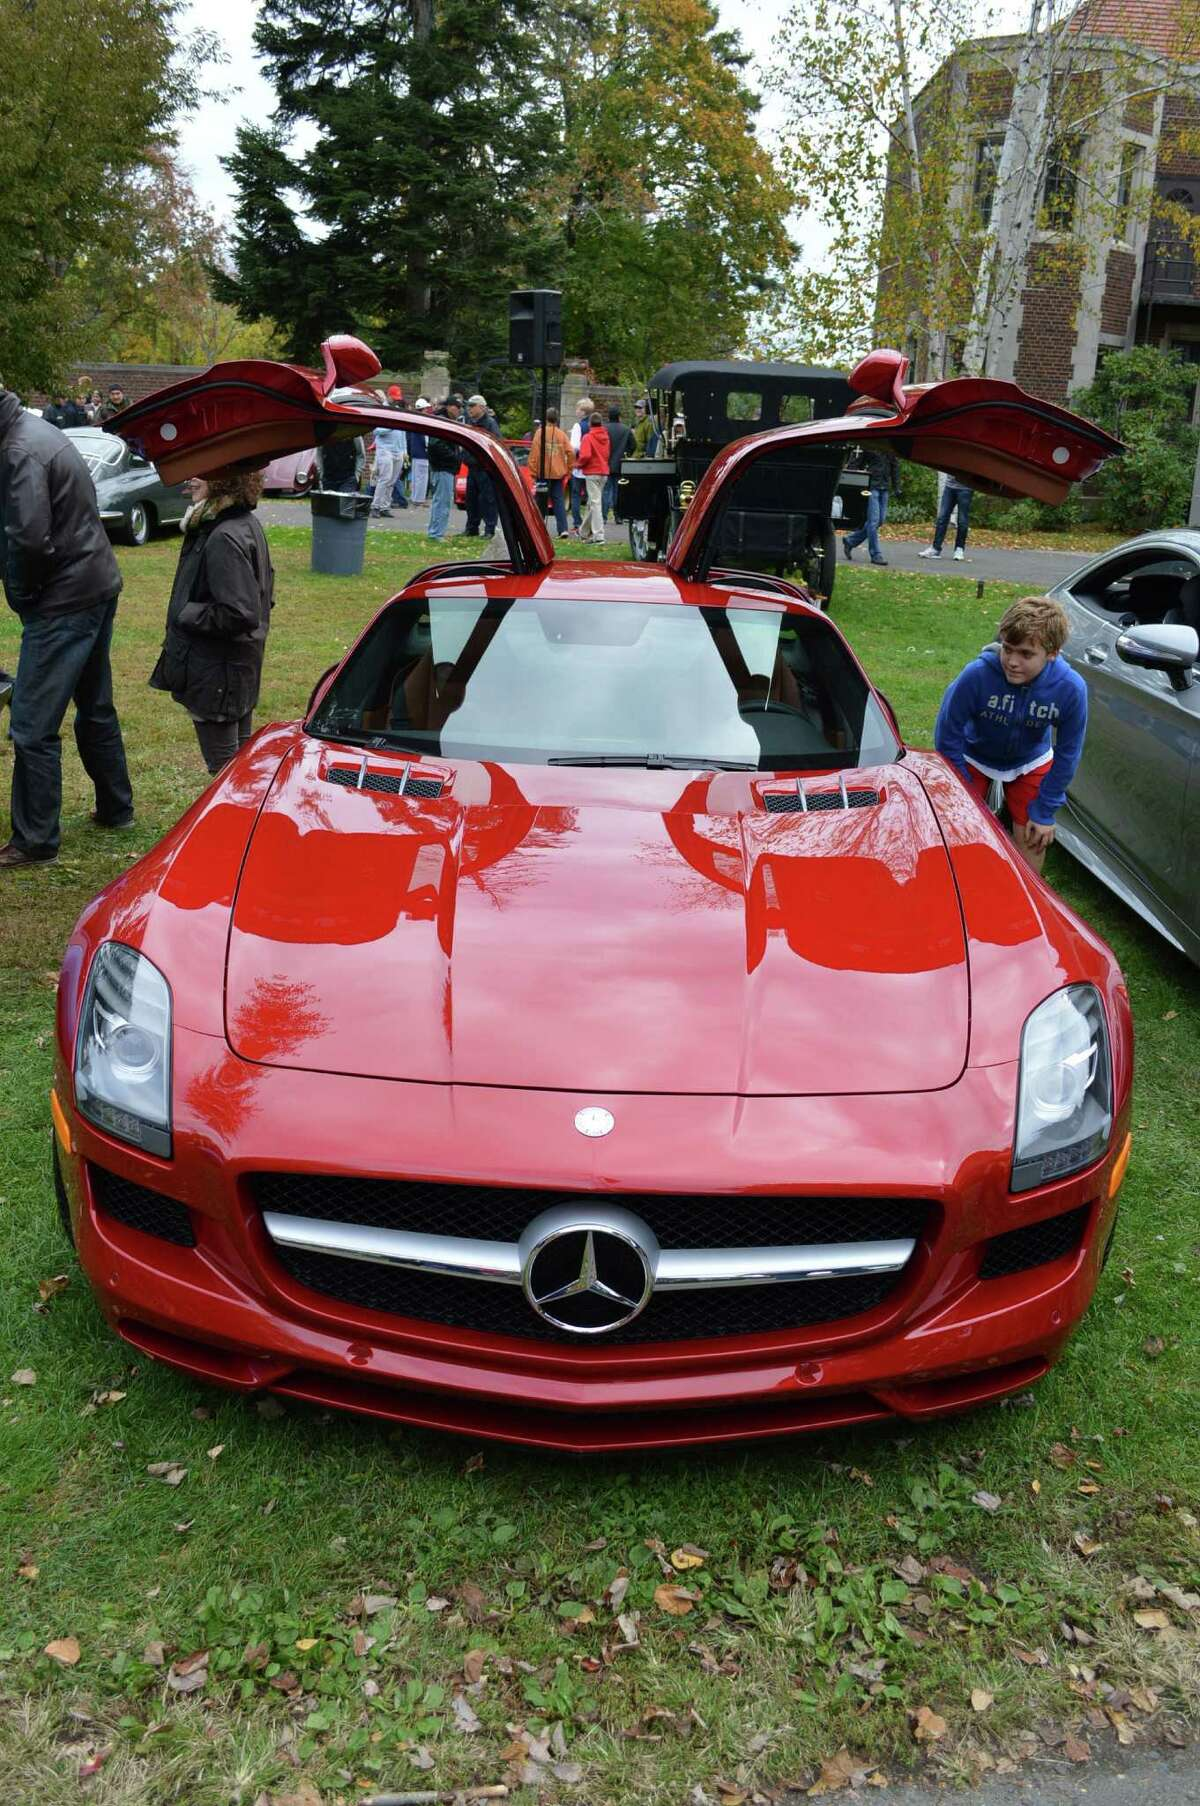 This red Mercedes attention drew close attention from many attendees at Sunday's Caffeine & Carburetors.